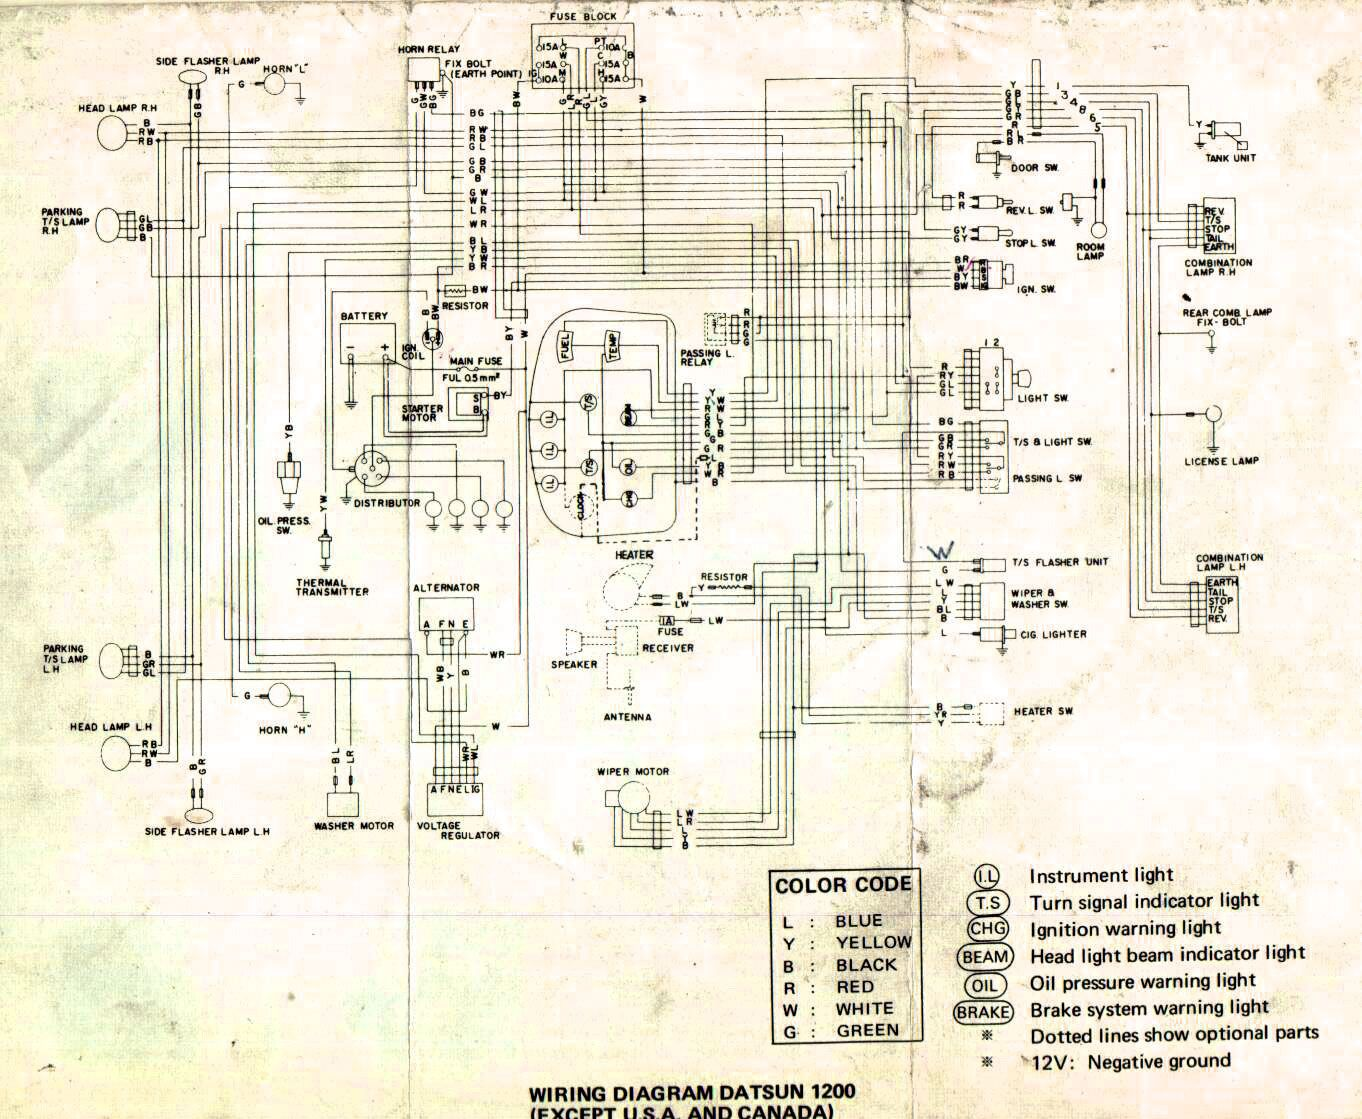 wiring diagram for nissan 1400 bakkie 8 [ 1362 x 1119 Pixel ]